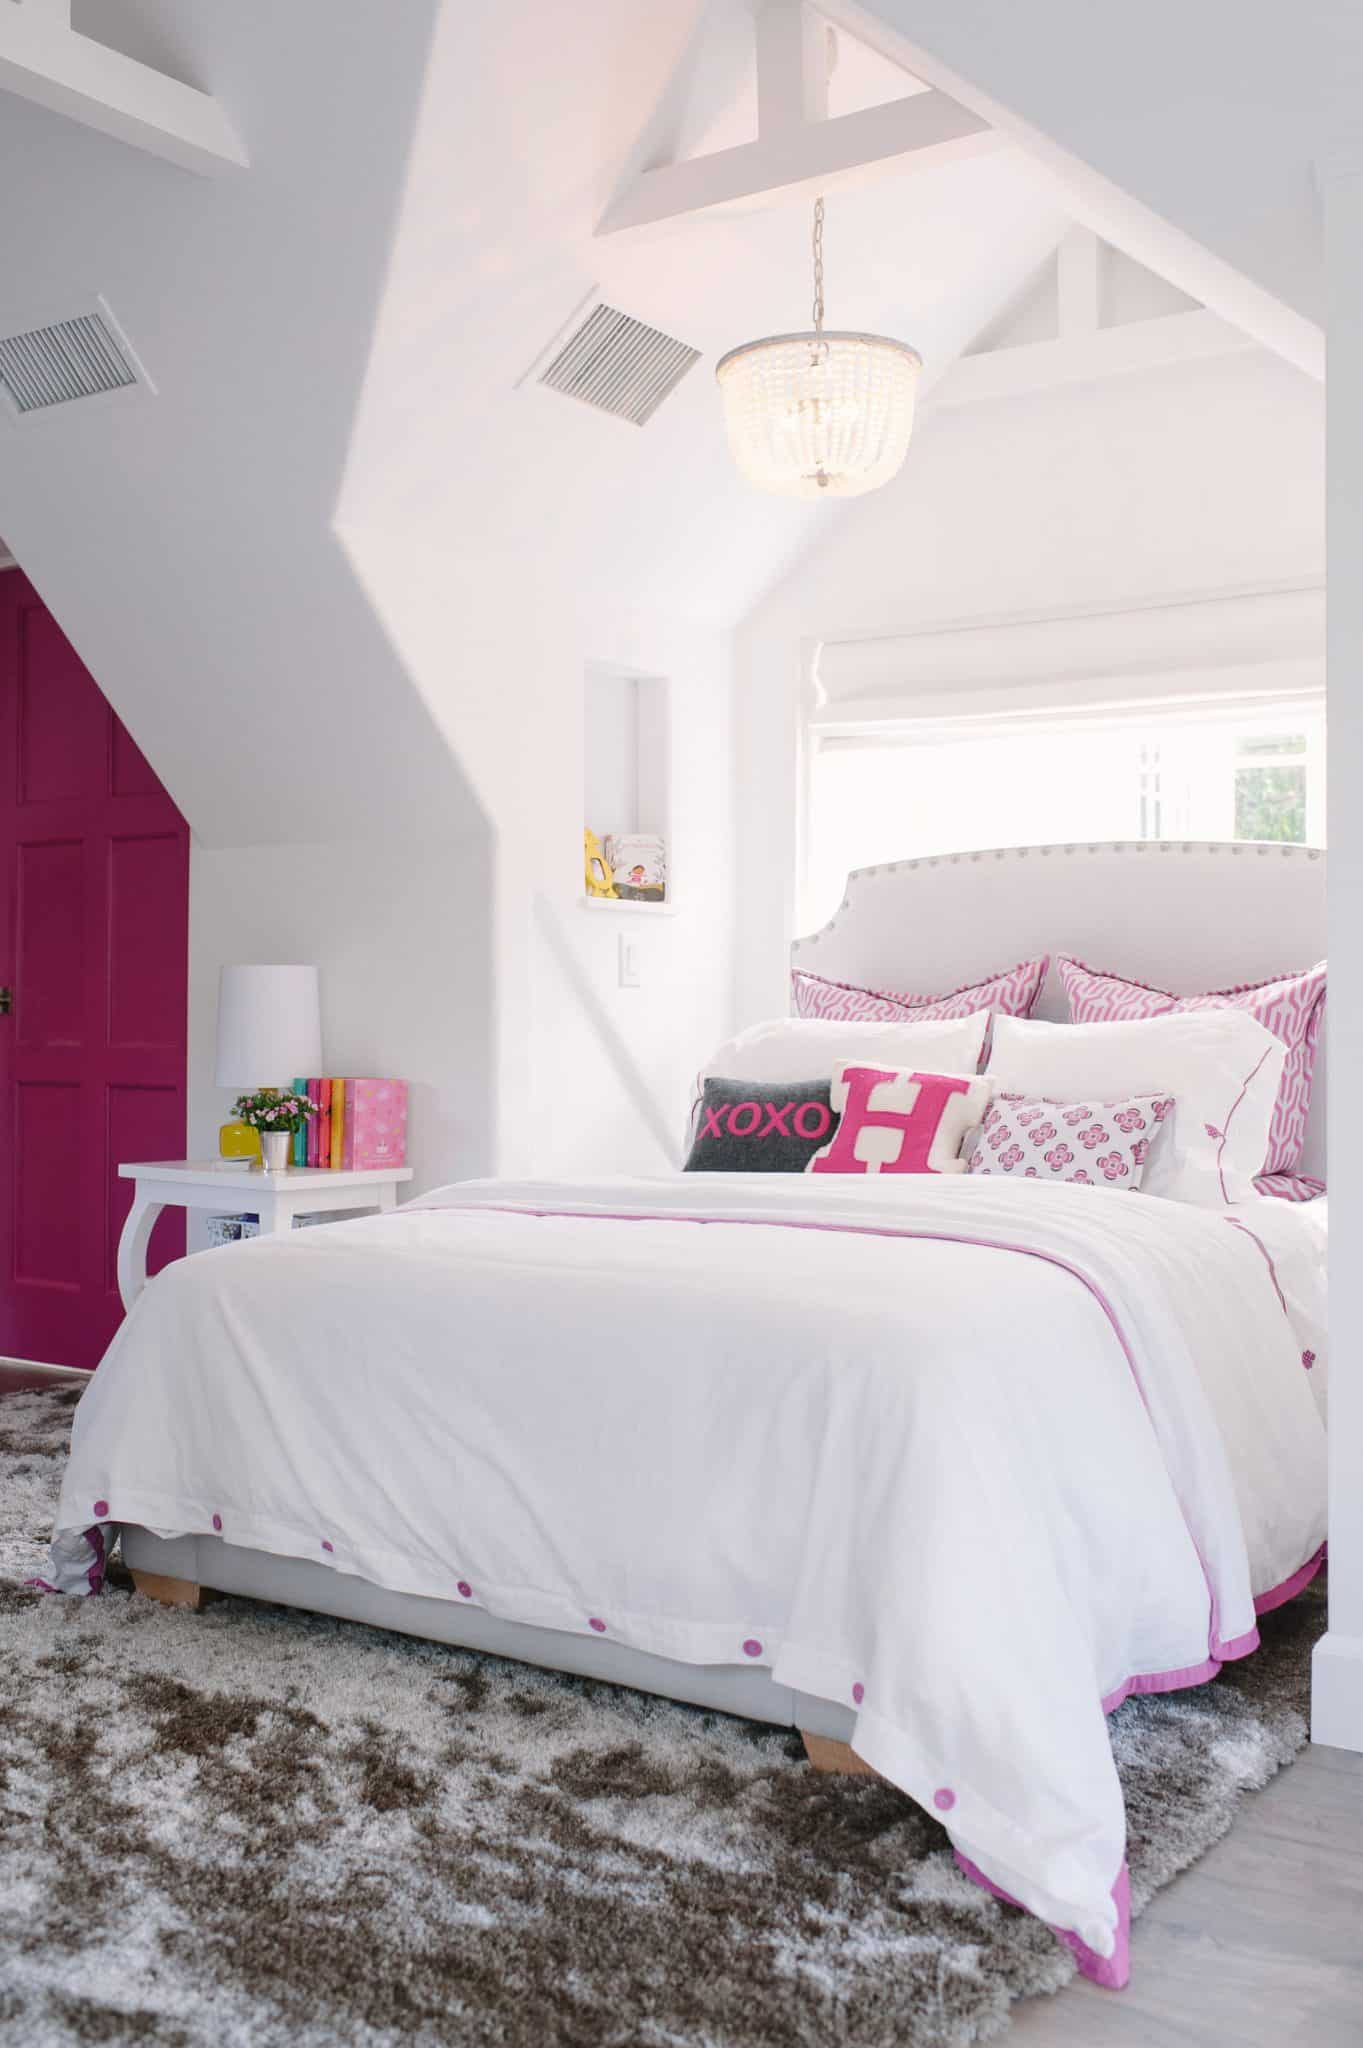 Harper Smith bedroom by Tiffani Thiessen